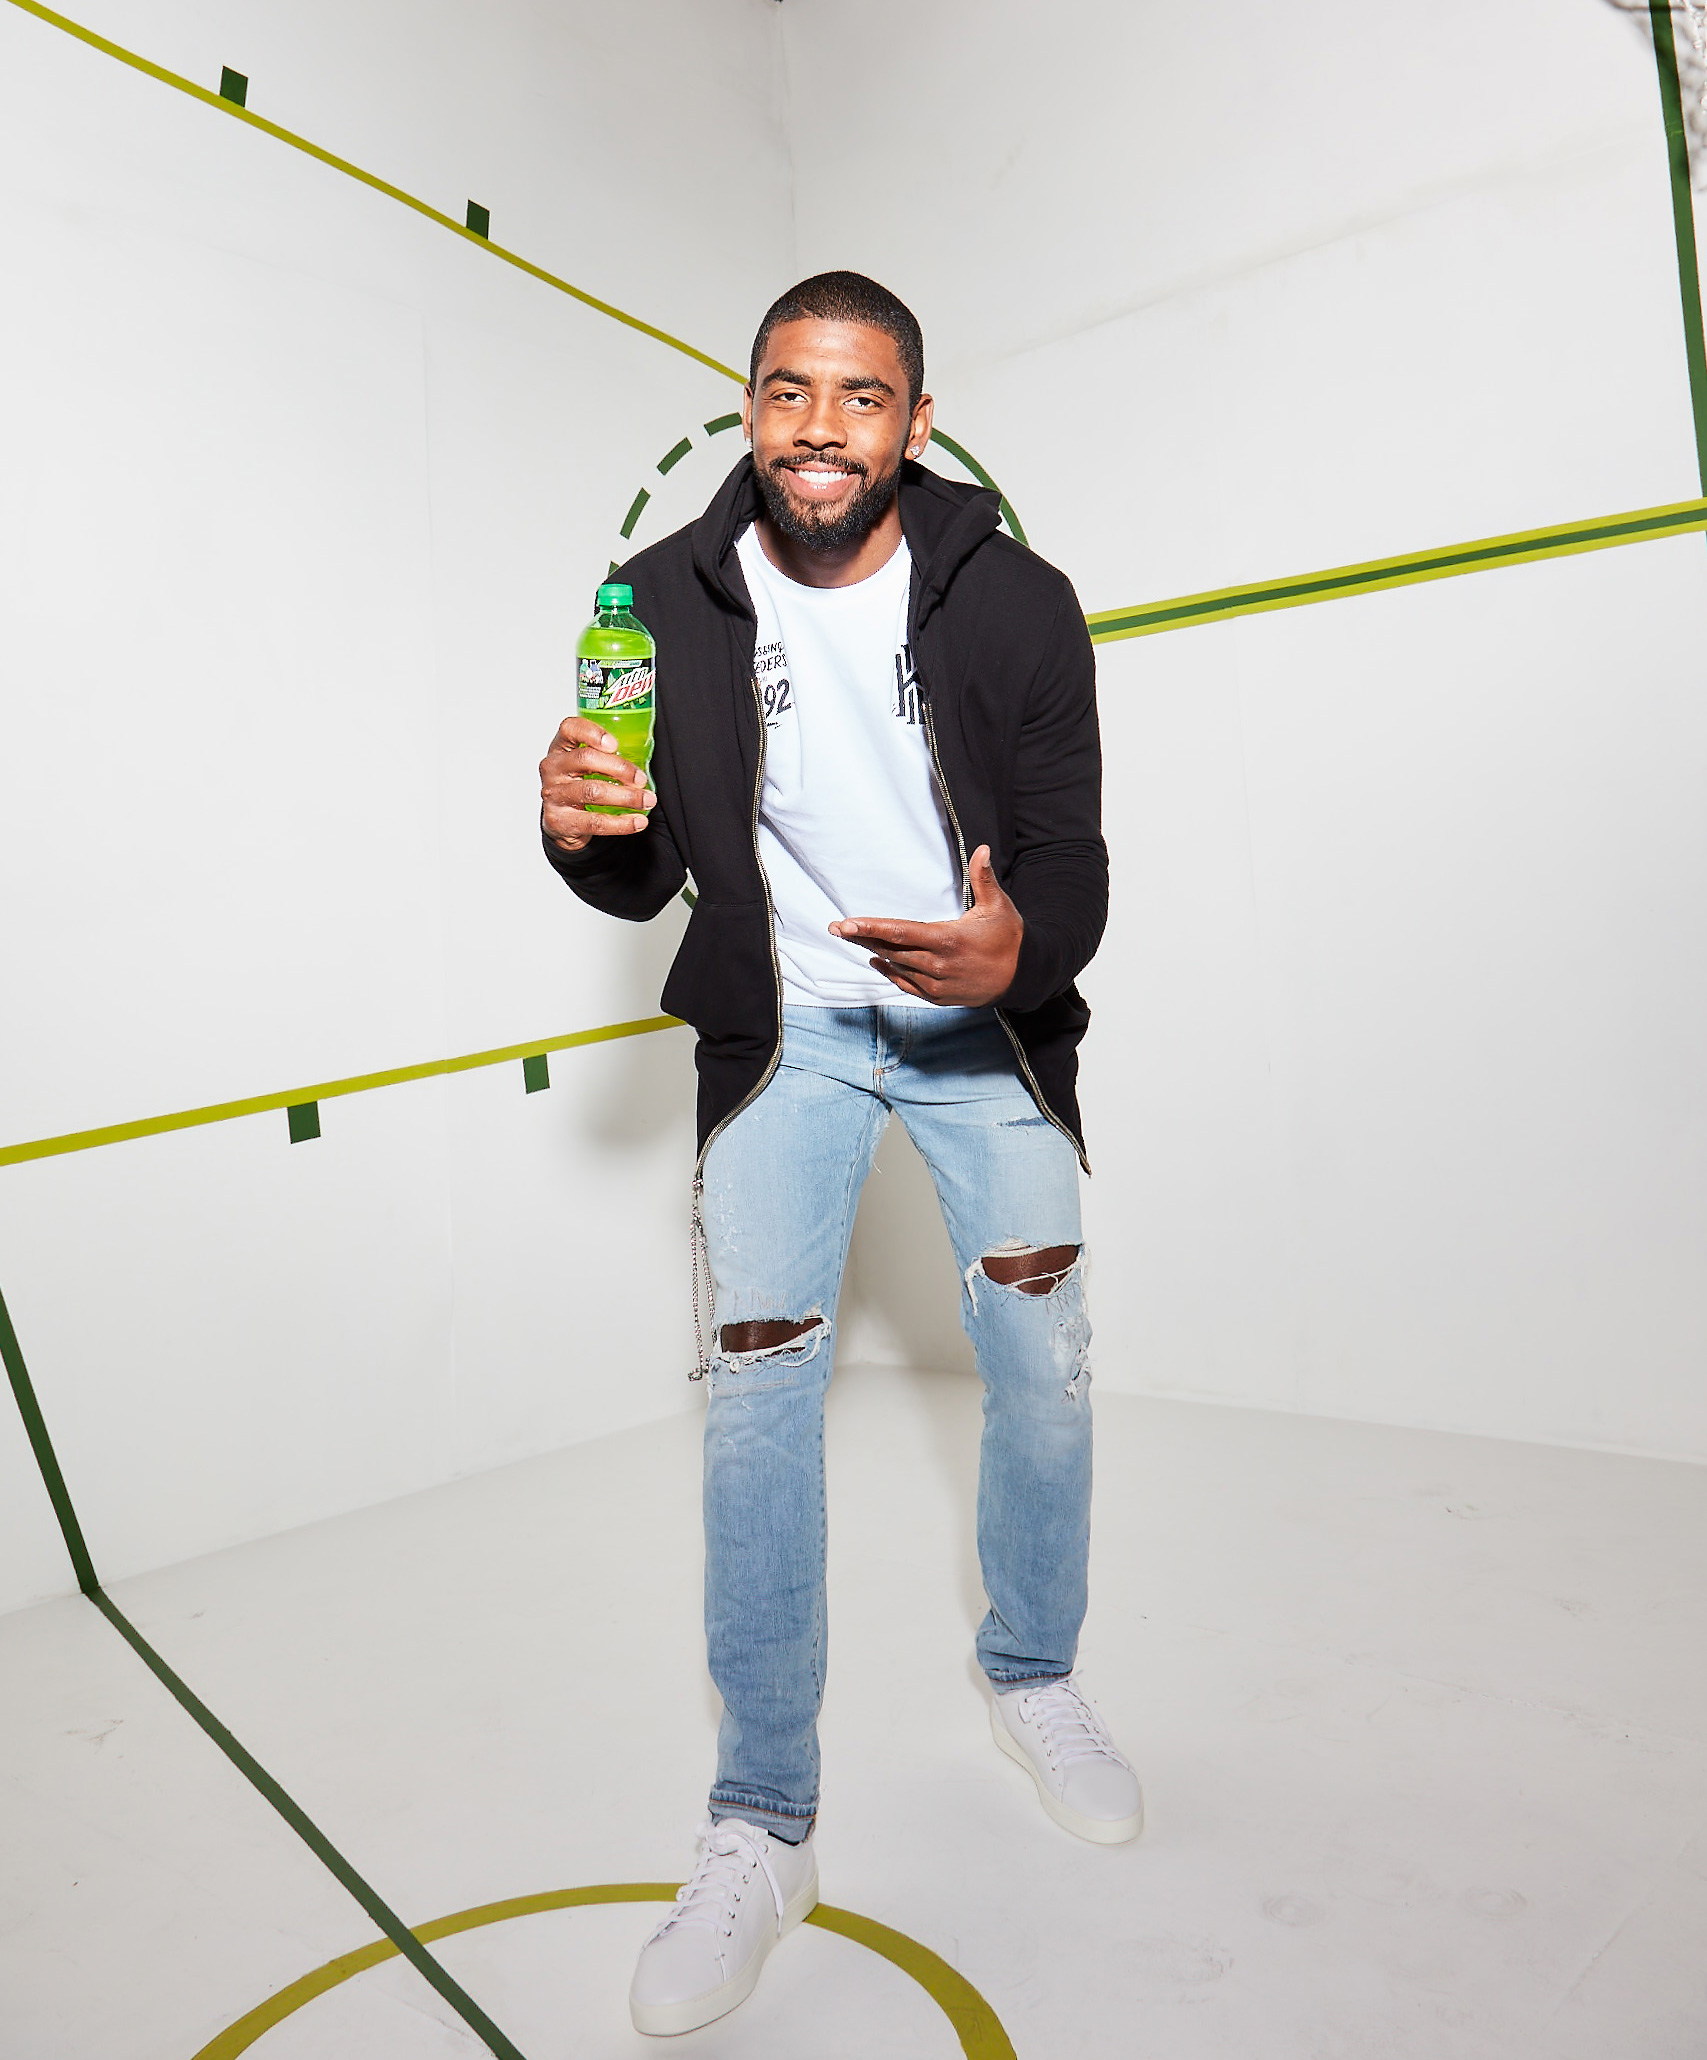 Kyrie Irving Joins Russell Westbrook On Team Mtn Dew